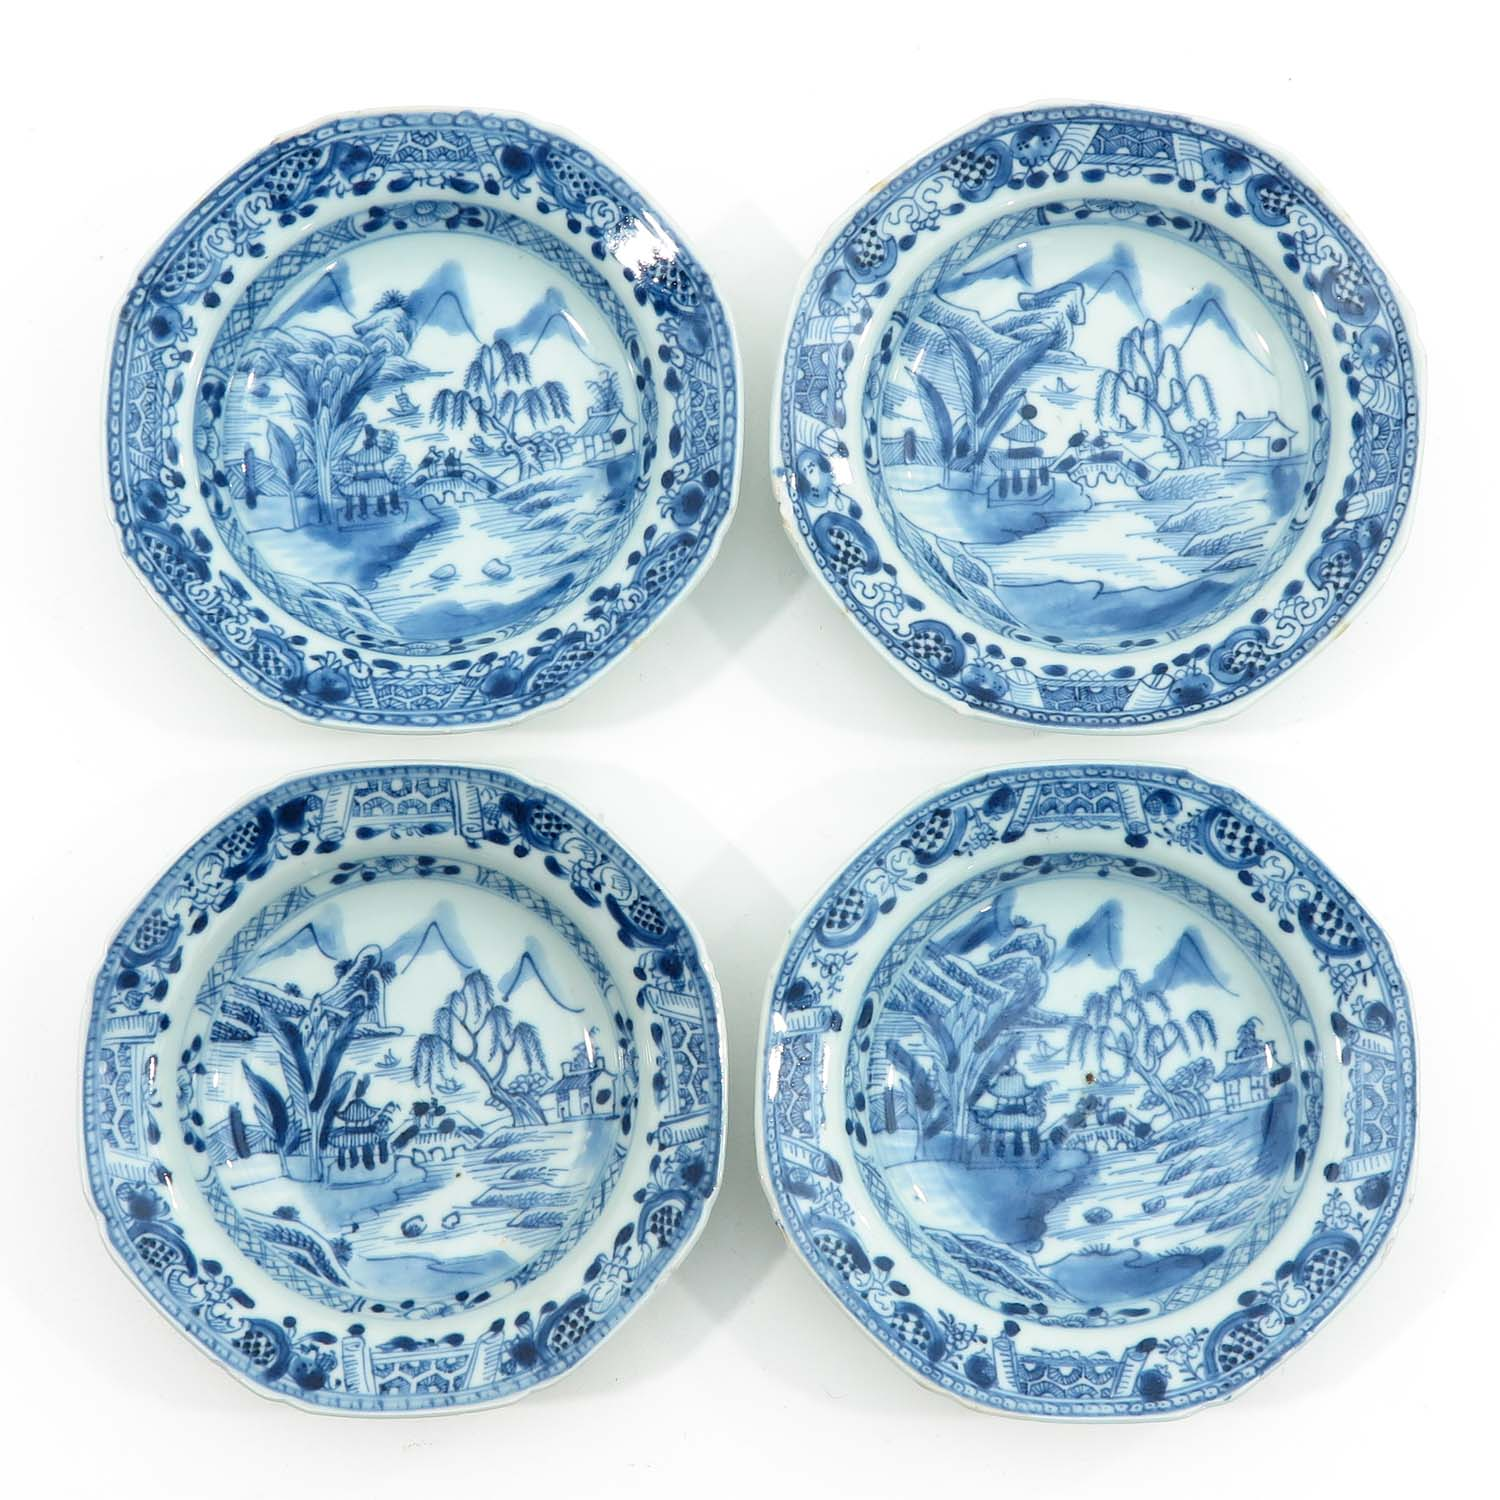 A Series of 8 Blue and White Plates - Image 5 of 9